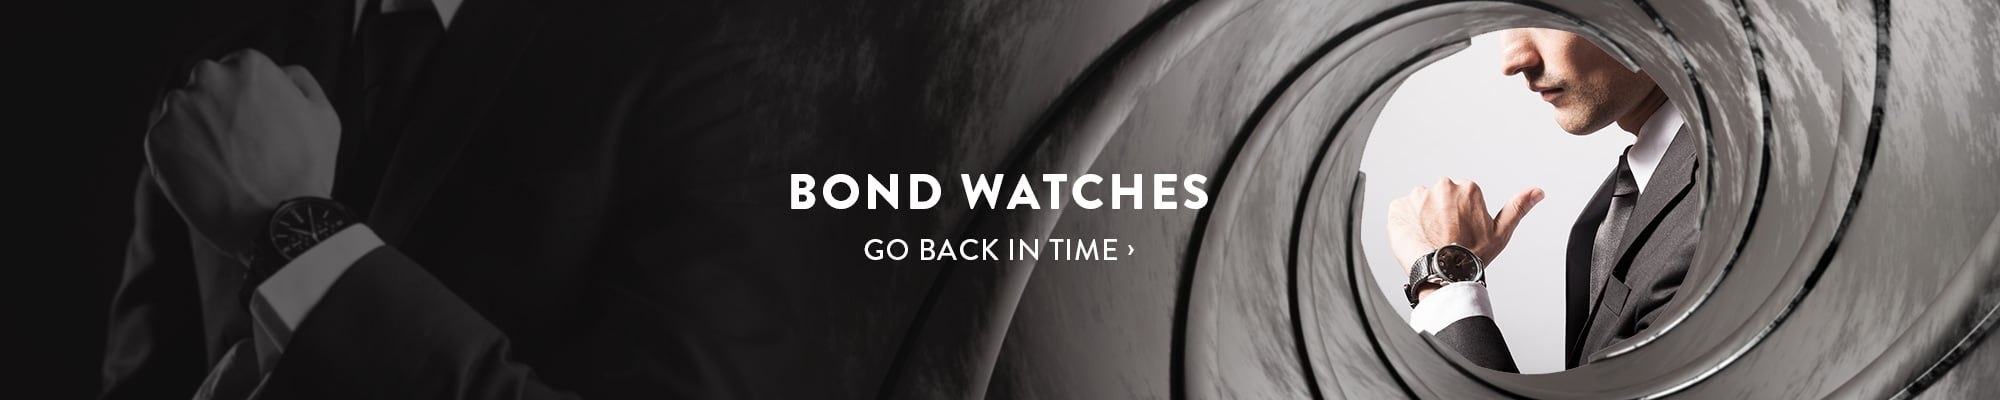 Bond Watches Campaign